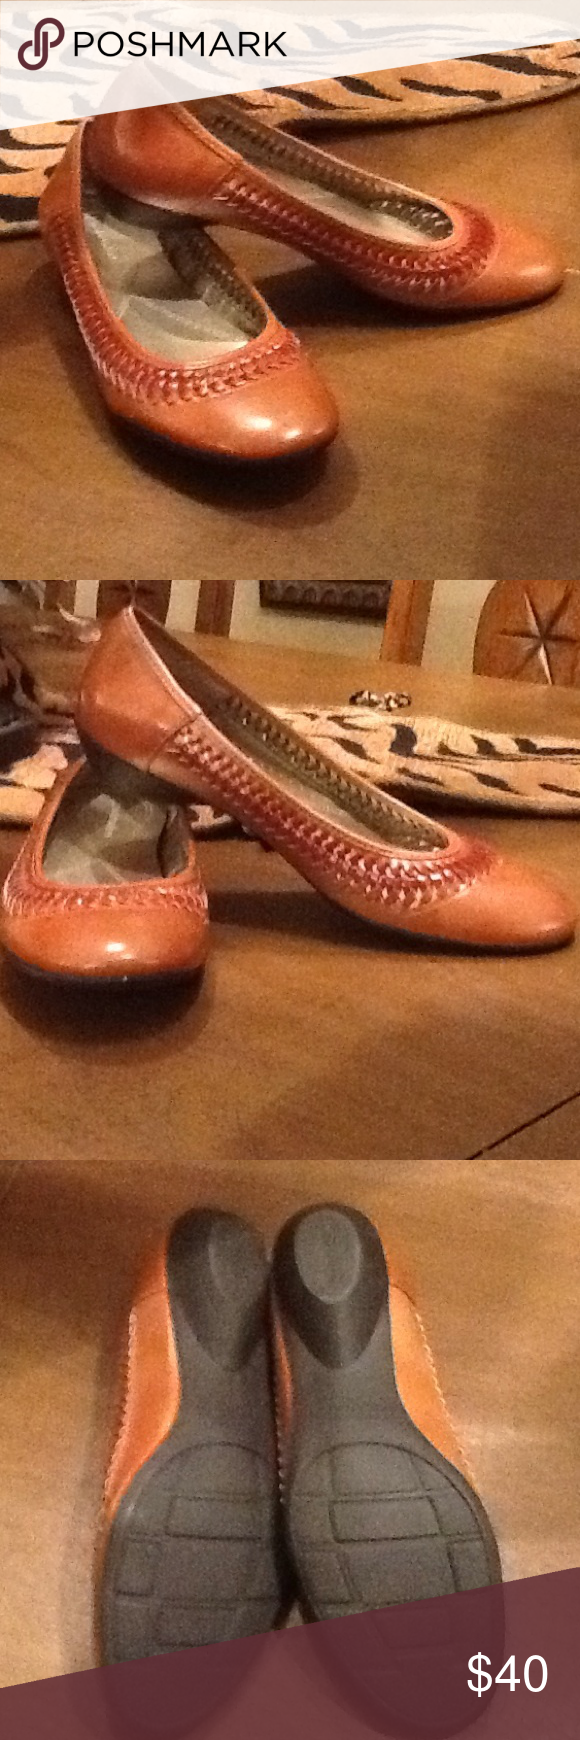 Naturalizer Halia Saddle Tan Never worn, new,excellent condition Naturalizer Shoes Flats & Loafers